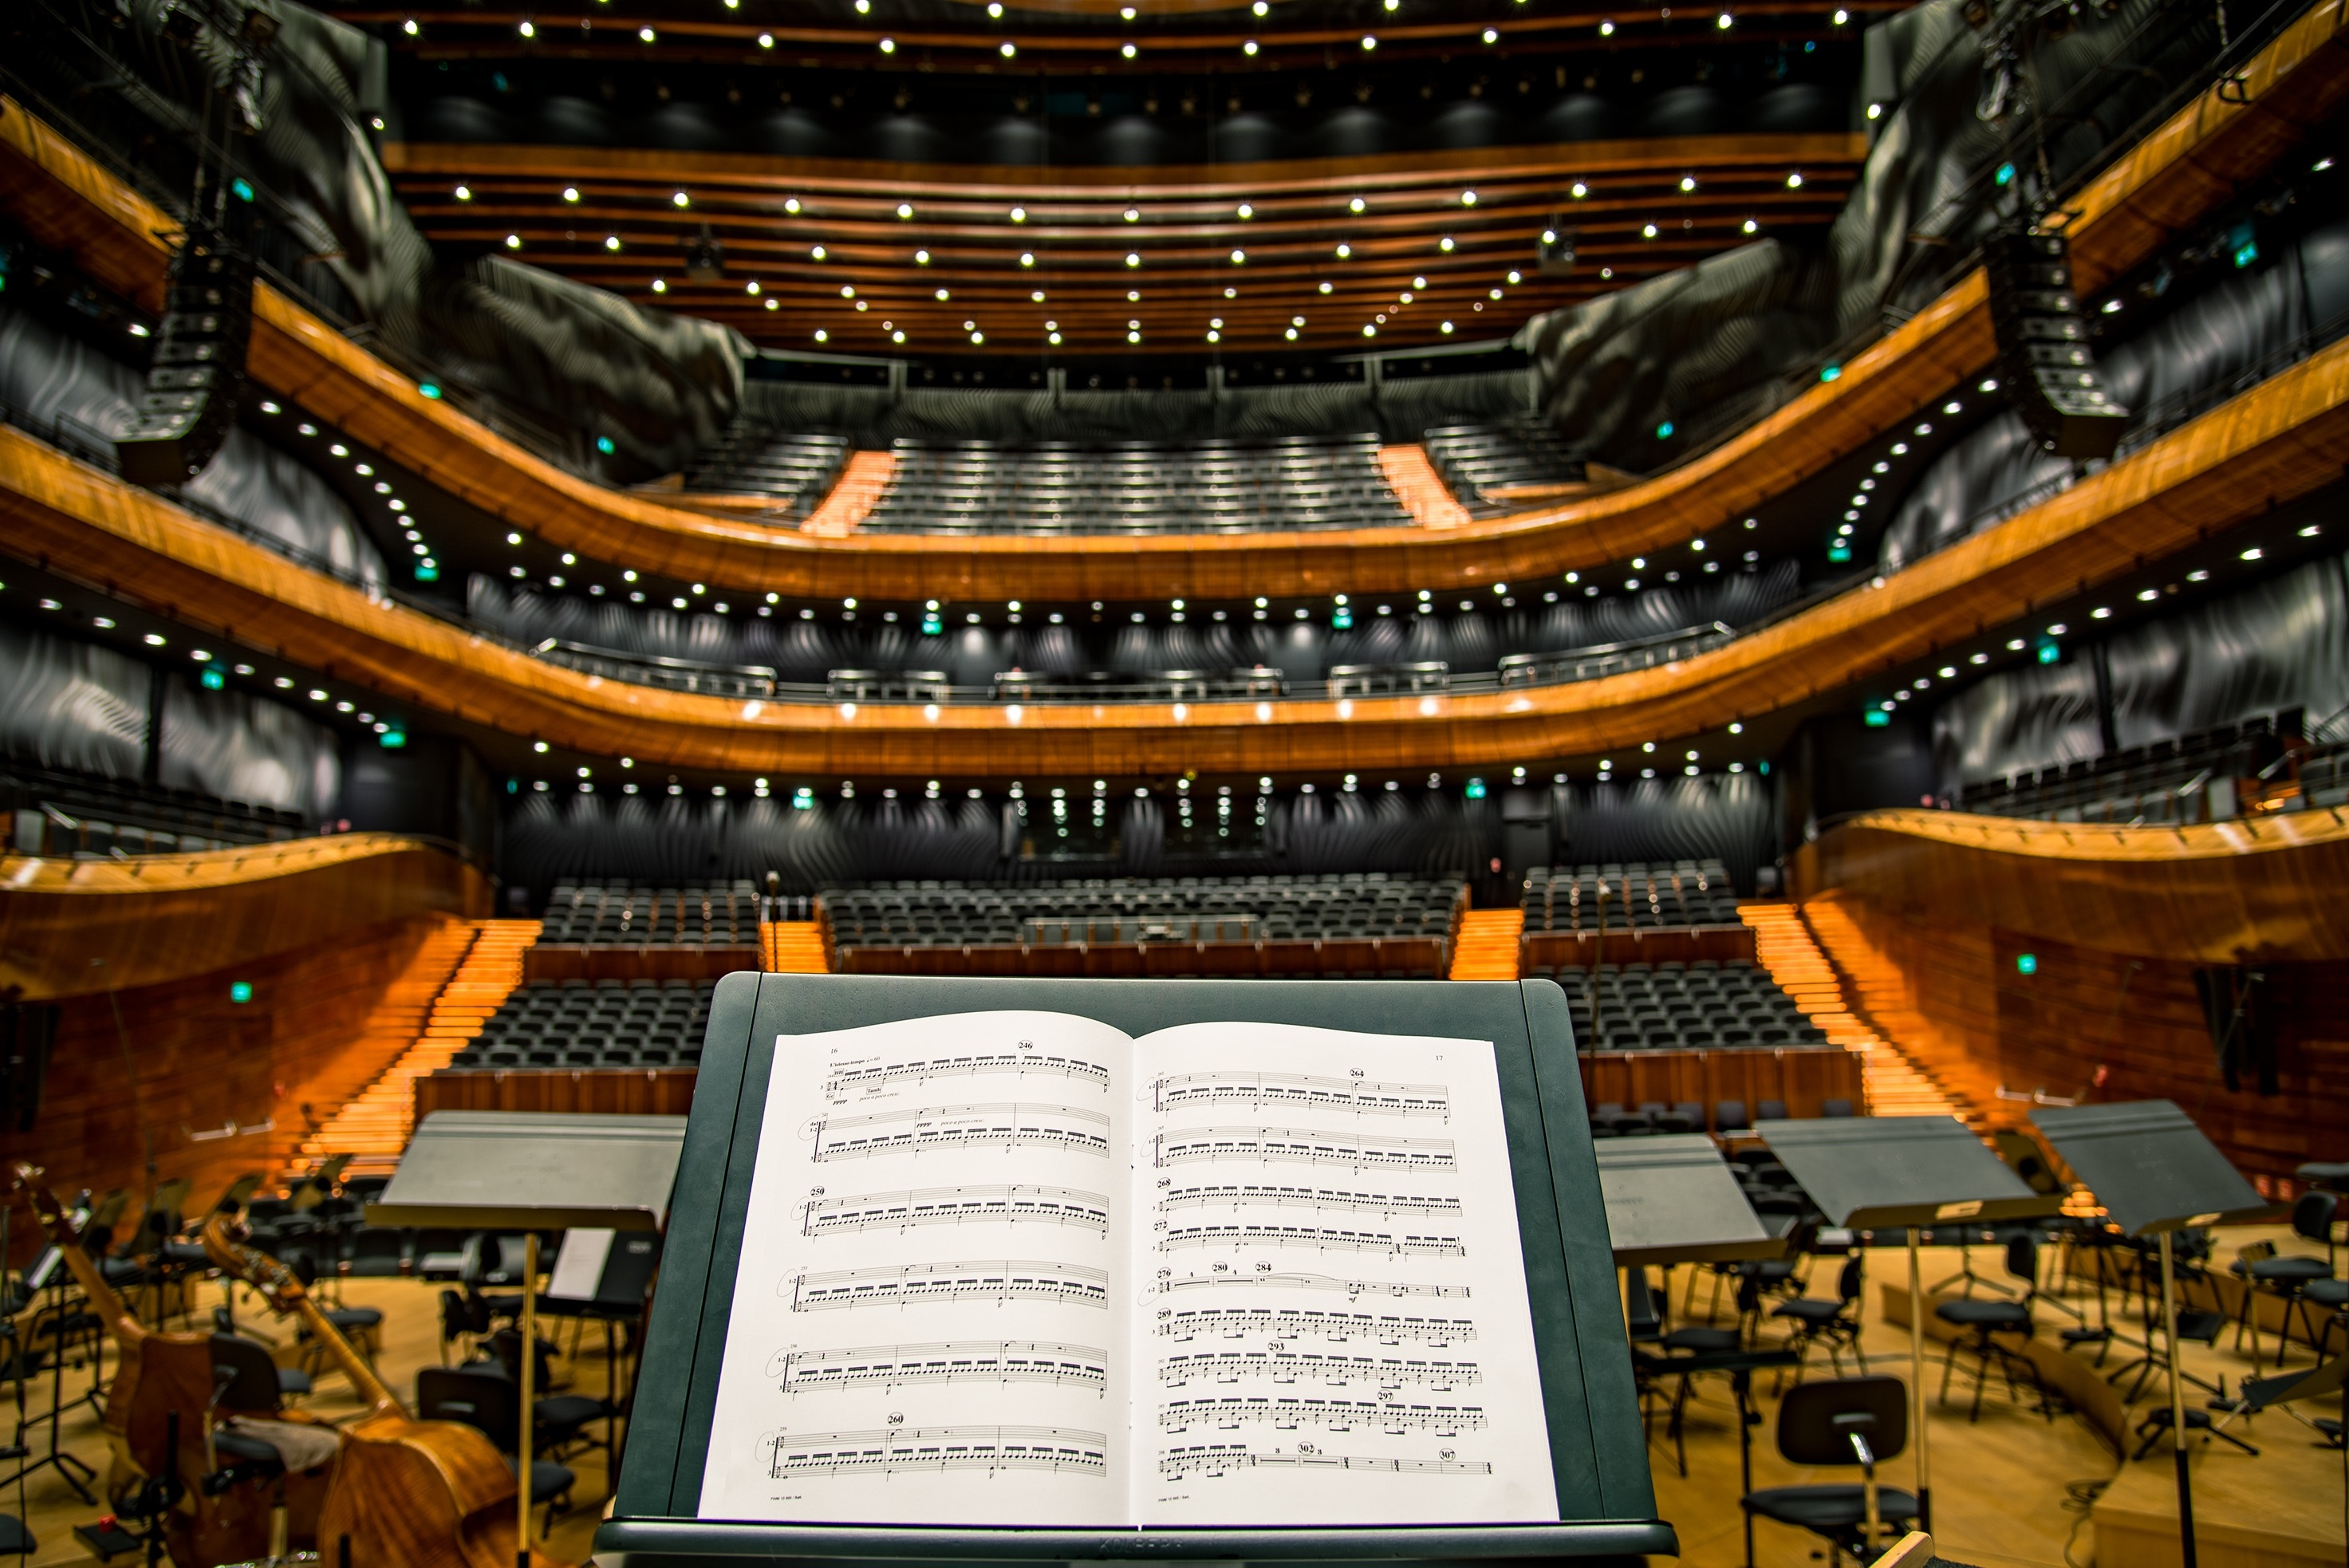 Conductor's view of the auditorium